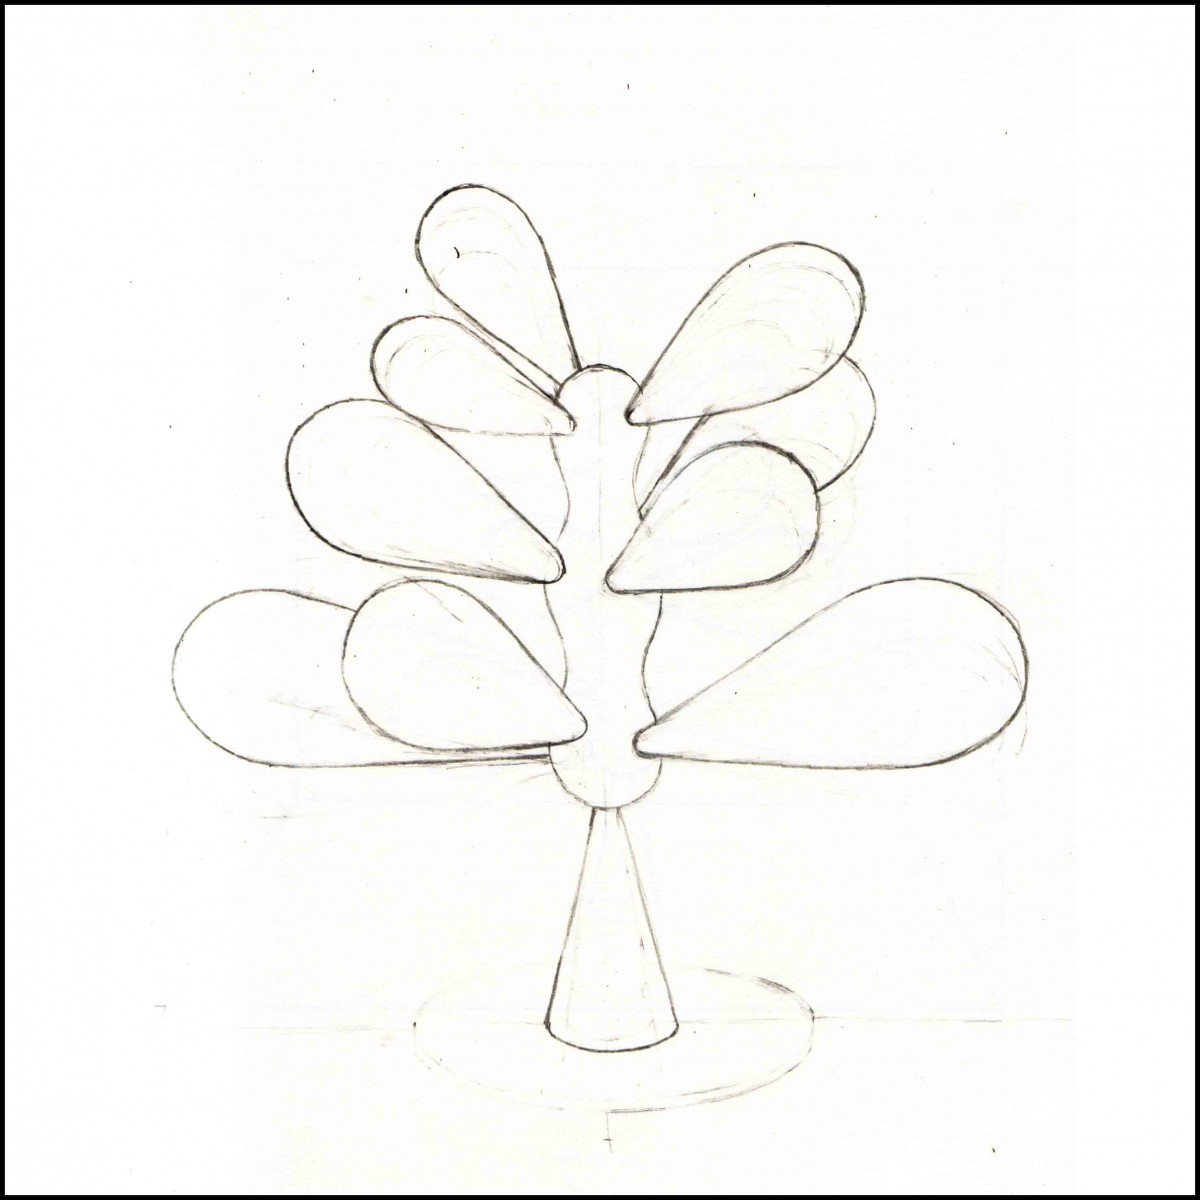 Cell 1 – Tree / figure sculpture drawing. Constructed in Oak